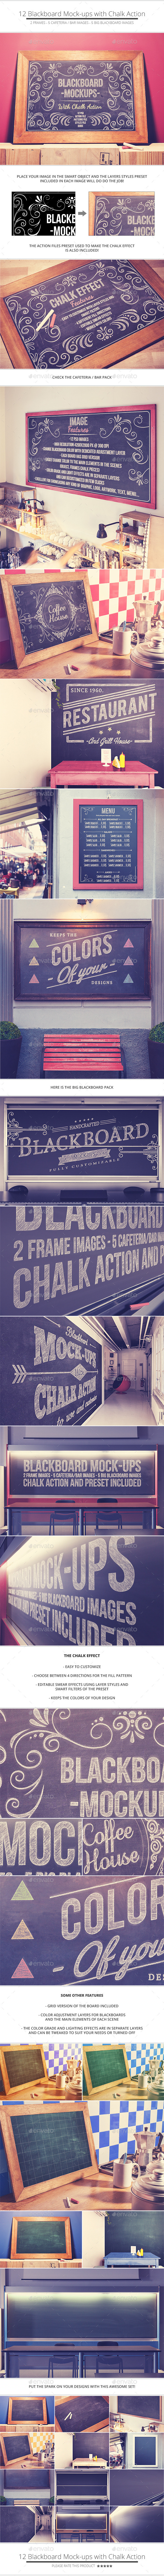 GraphicRiver Blackboard Chalkboard Mock-ups with Chalk Action 10799470